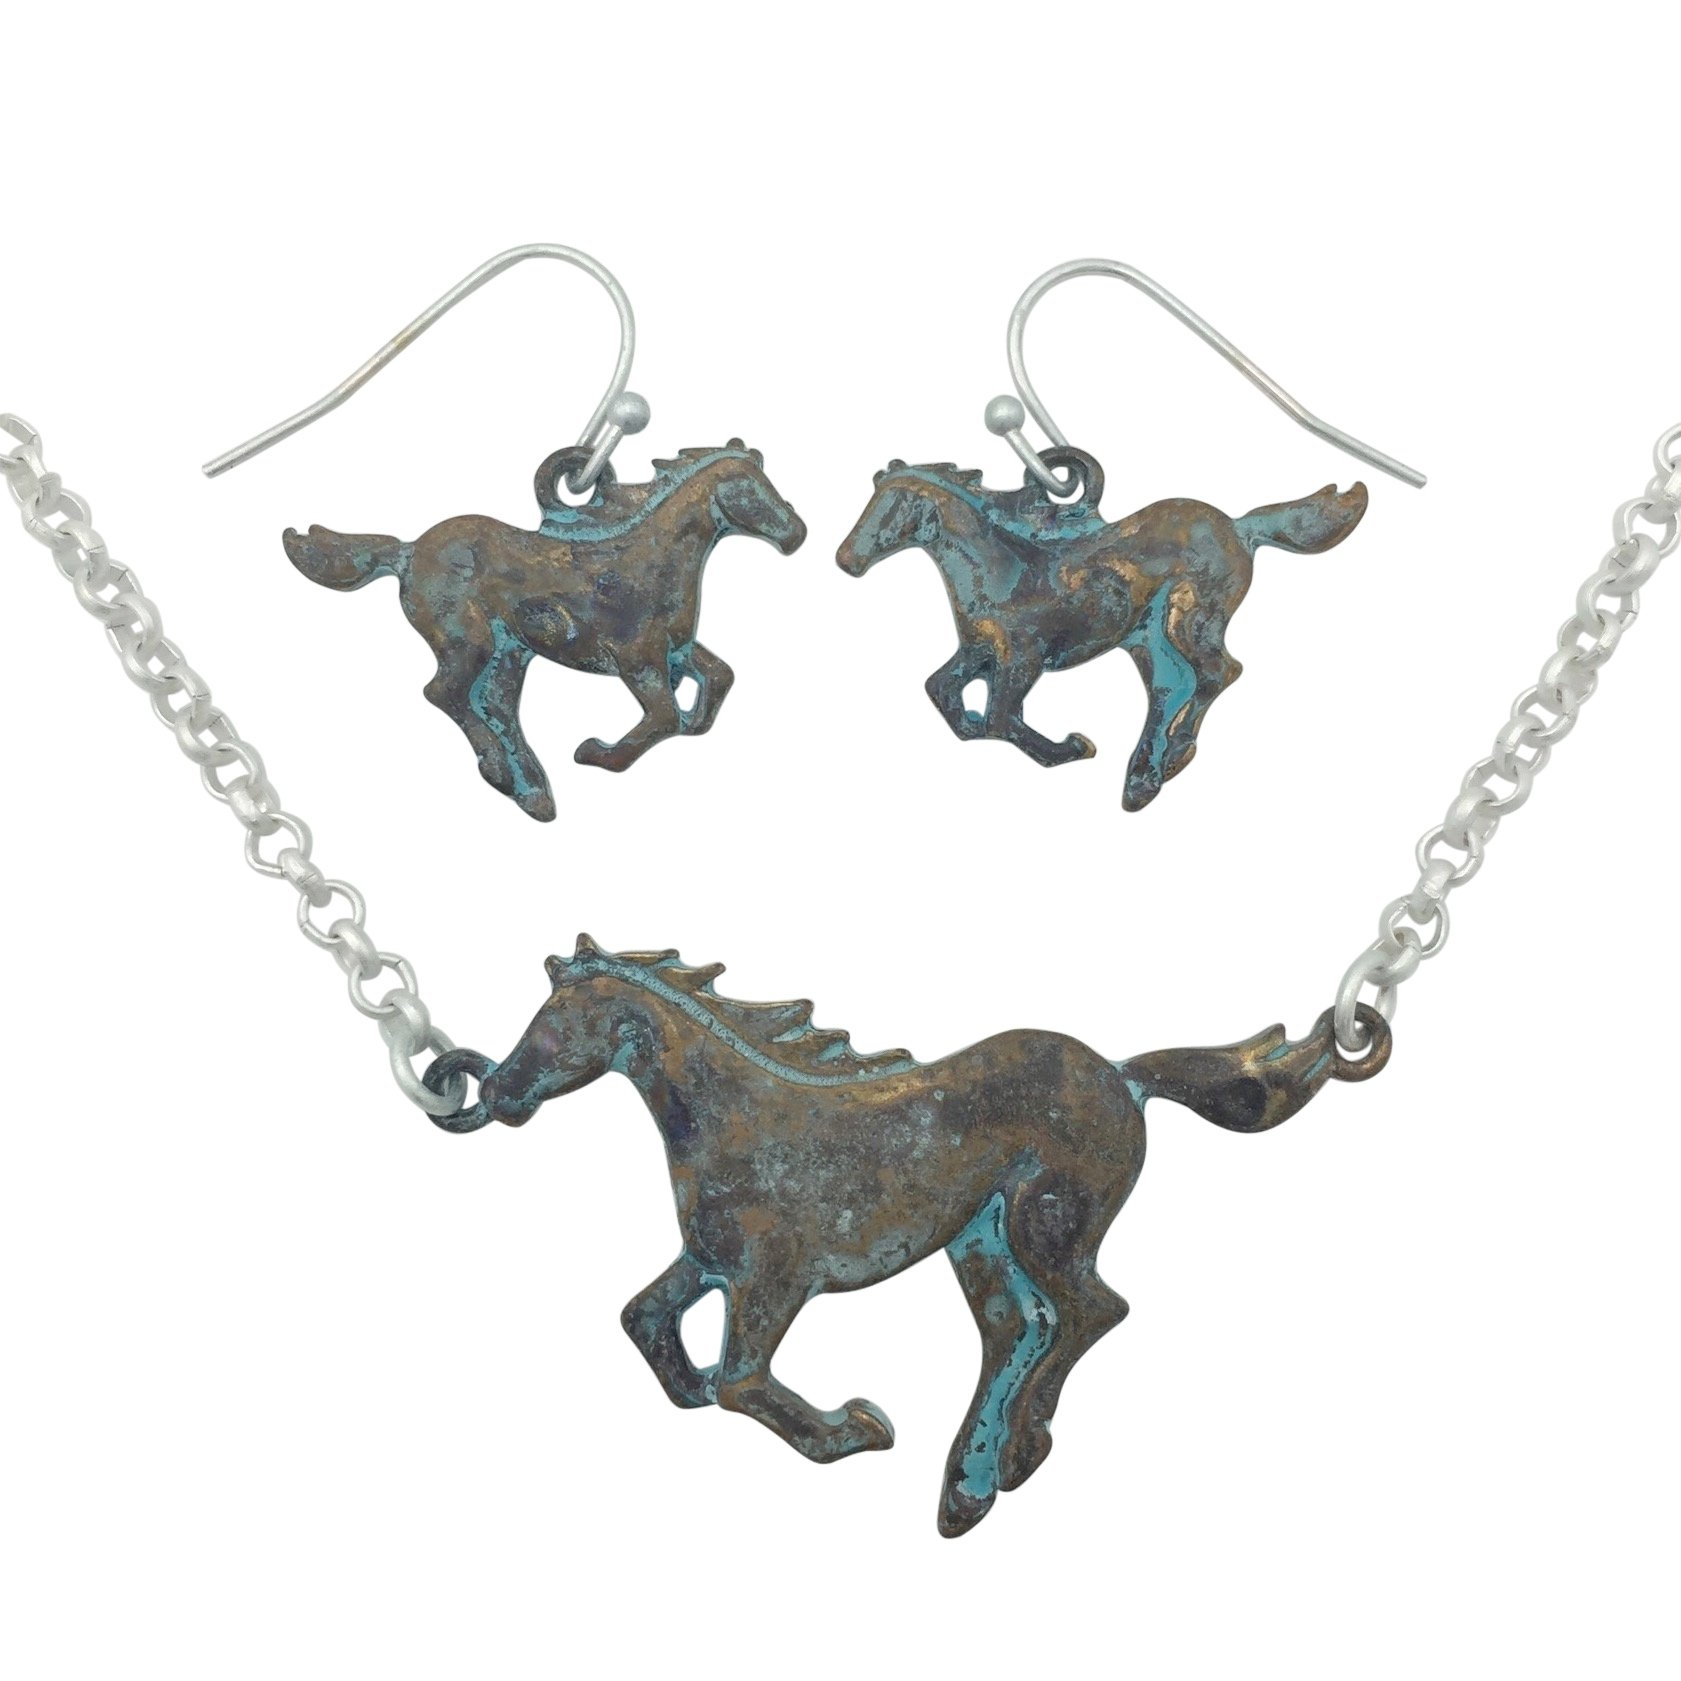 Running Horse Western Theme Necklace & Earring Set (Patina & Matte Silver Tone)